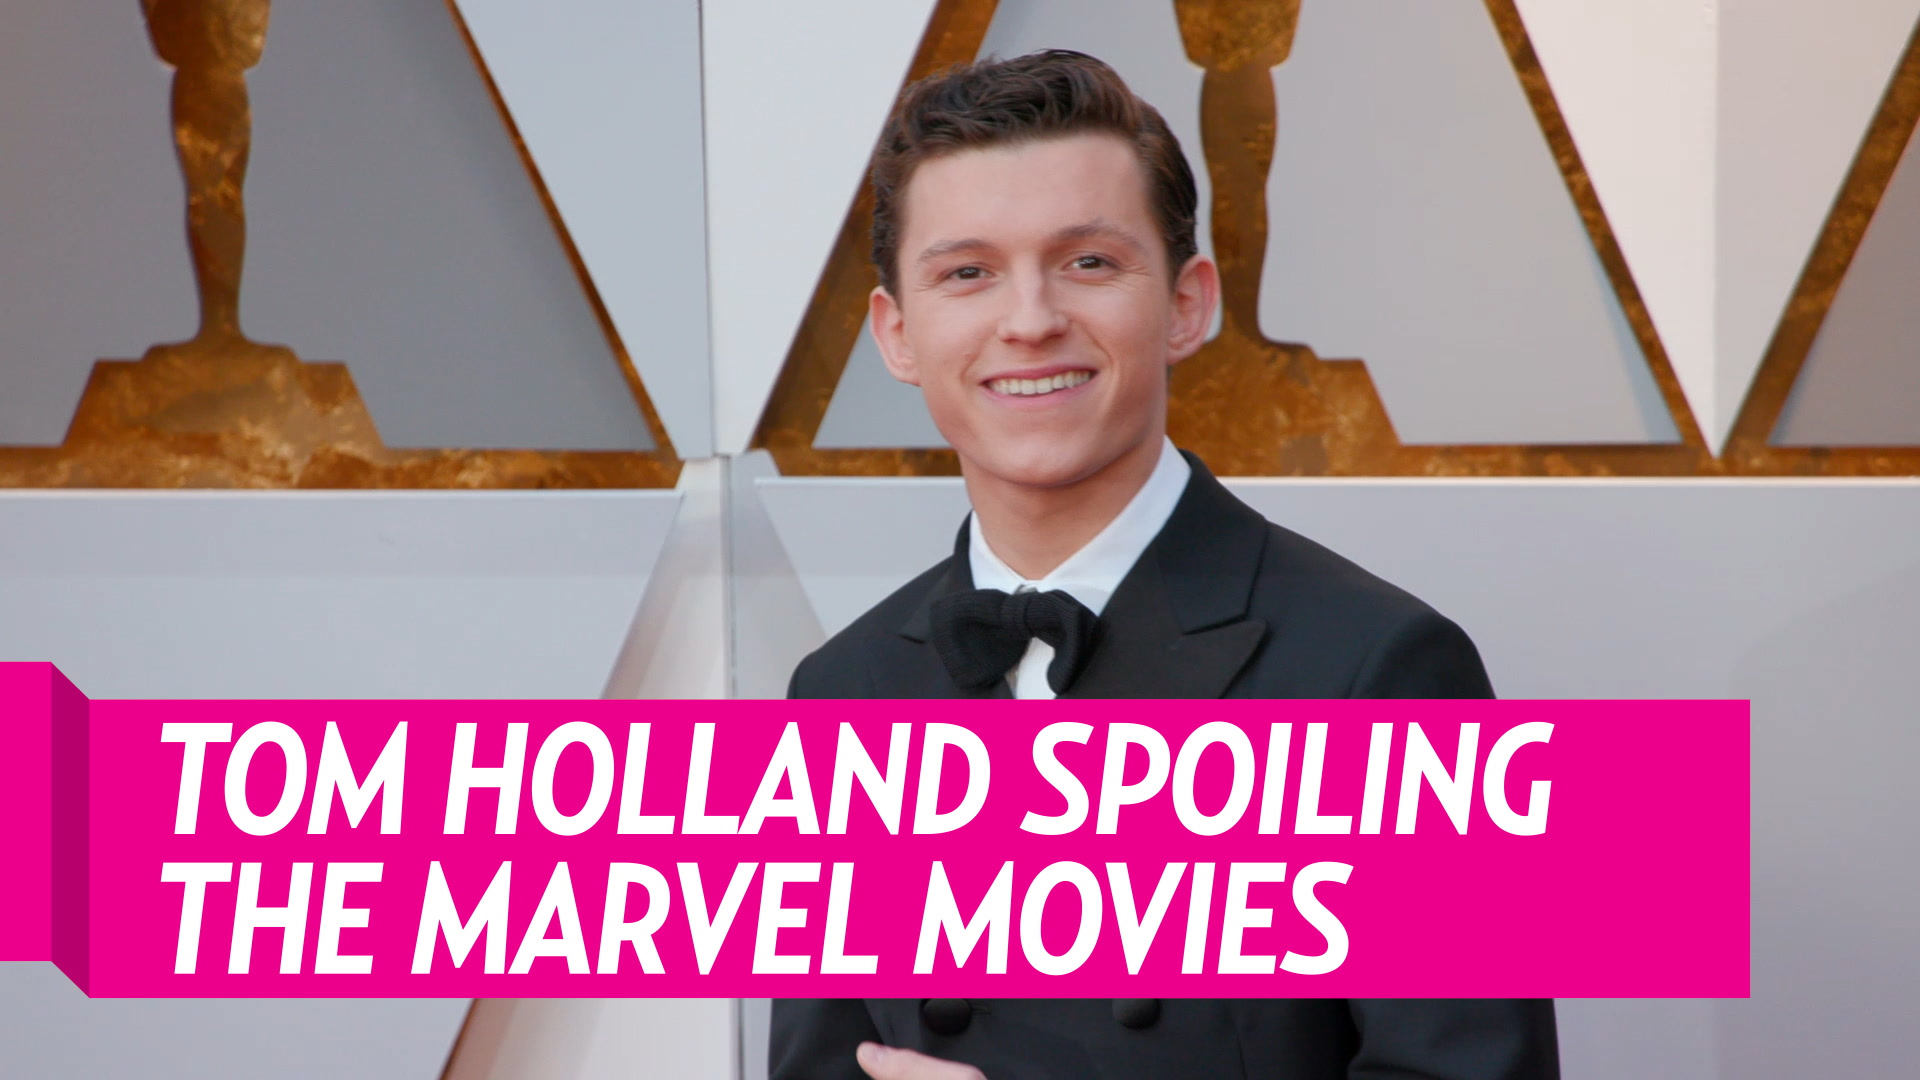 Tom Holland Spoiling the Marvel Movies